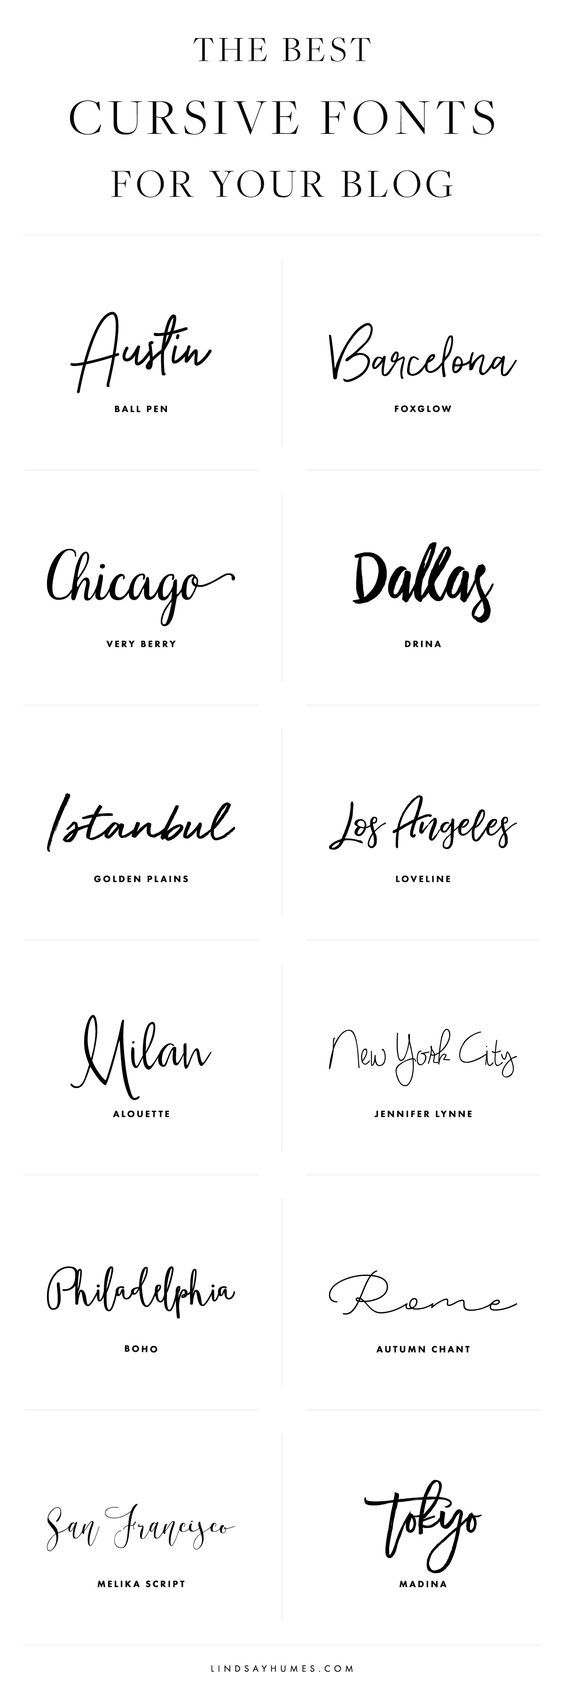 How to use cursive fonts in your blog design pinterest blog the best cursive fonts for your blog design script fonts to use in your branding blog design typography hand lettering altavistaventures Image collections